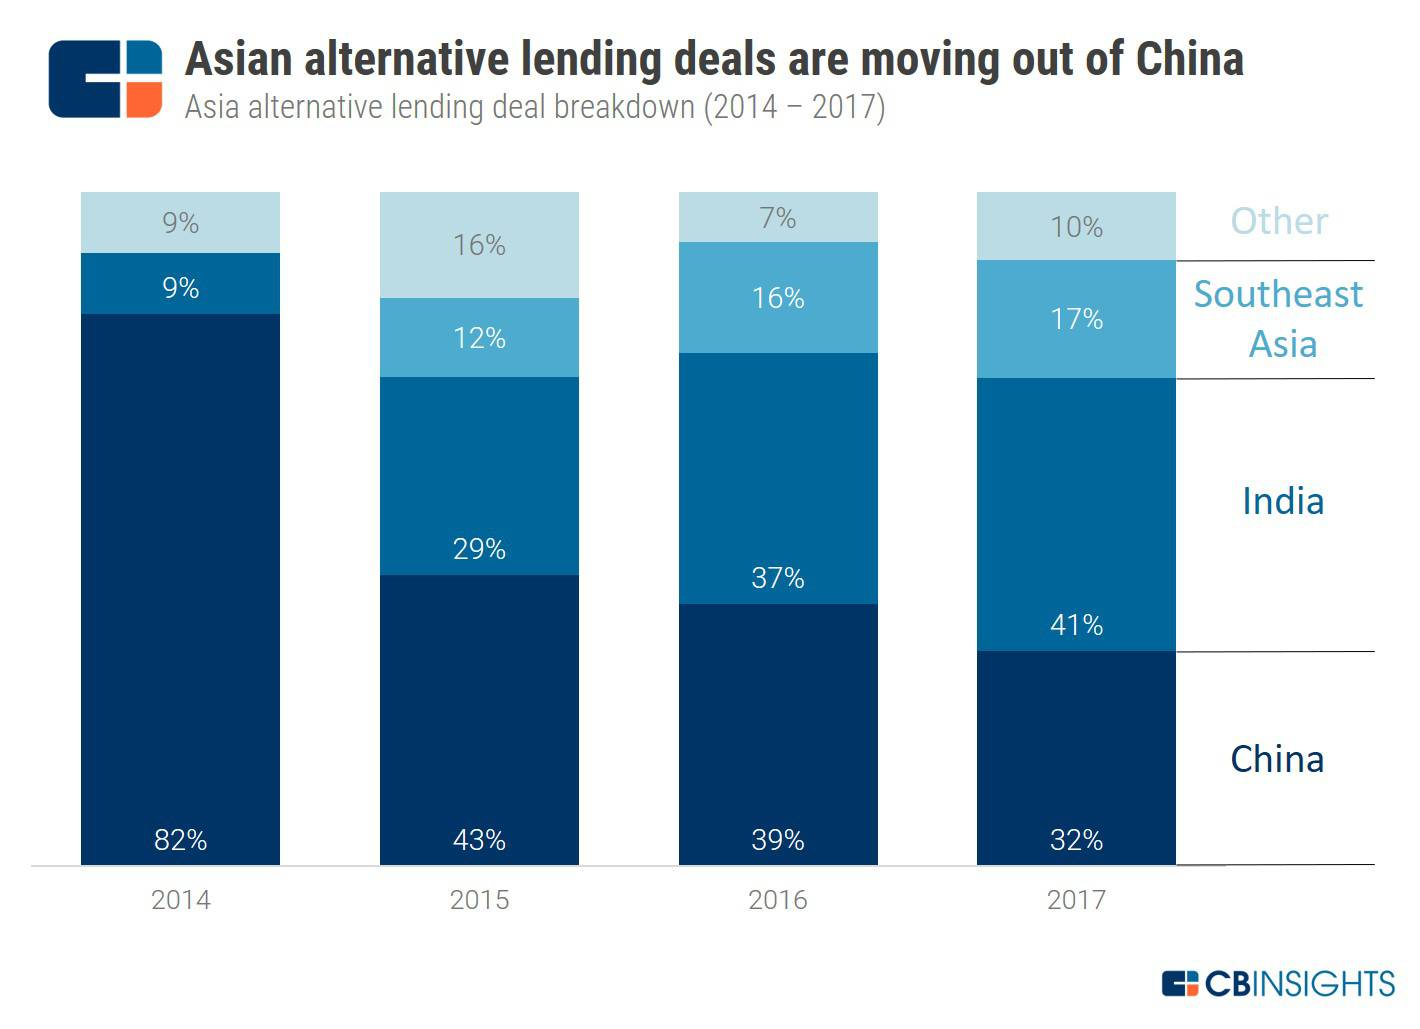 Why Alternative Lending Deals Are Moving Out Of China And